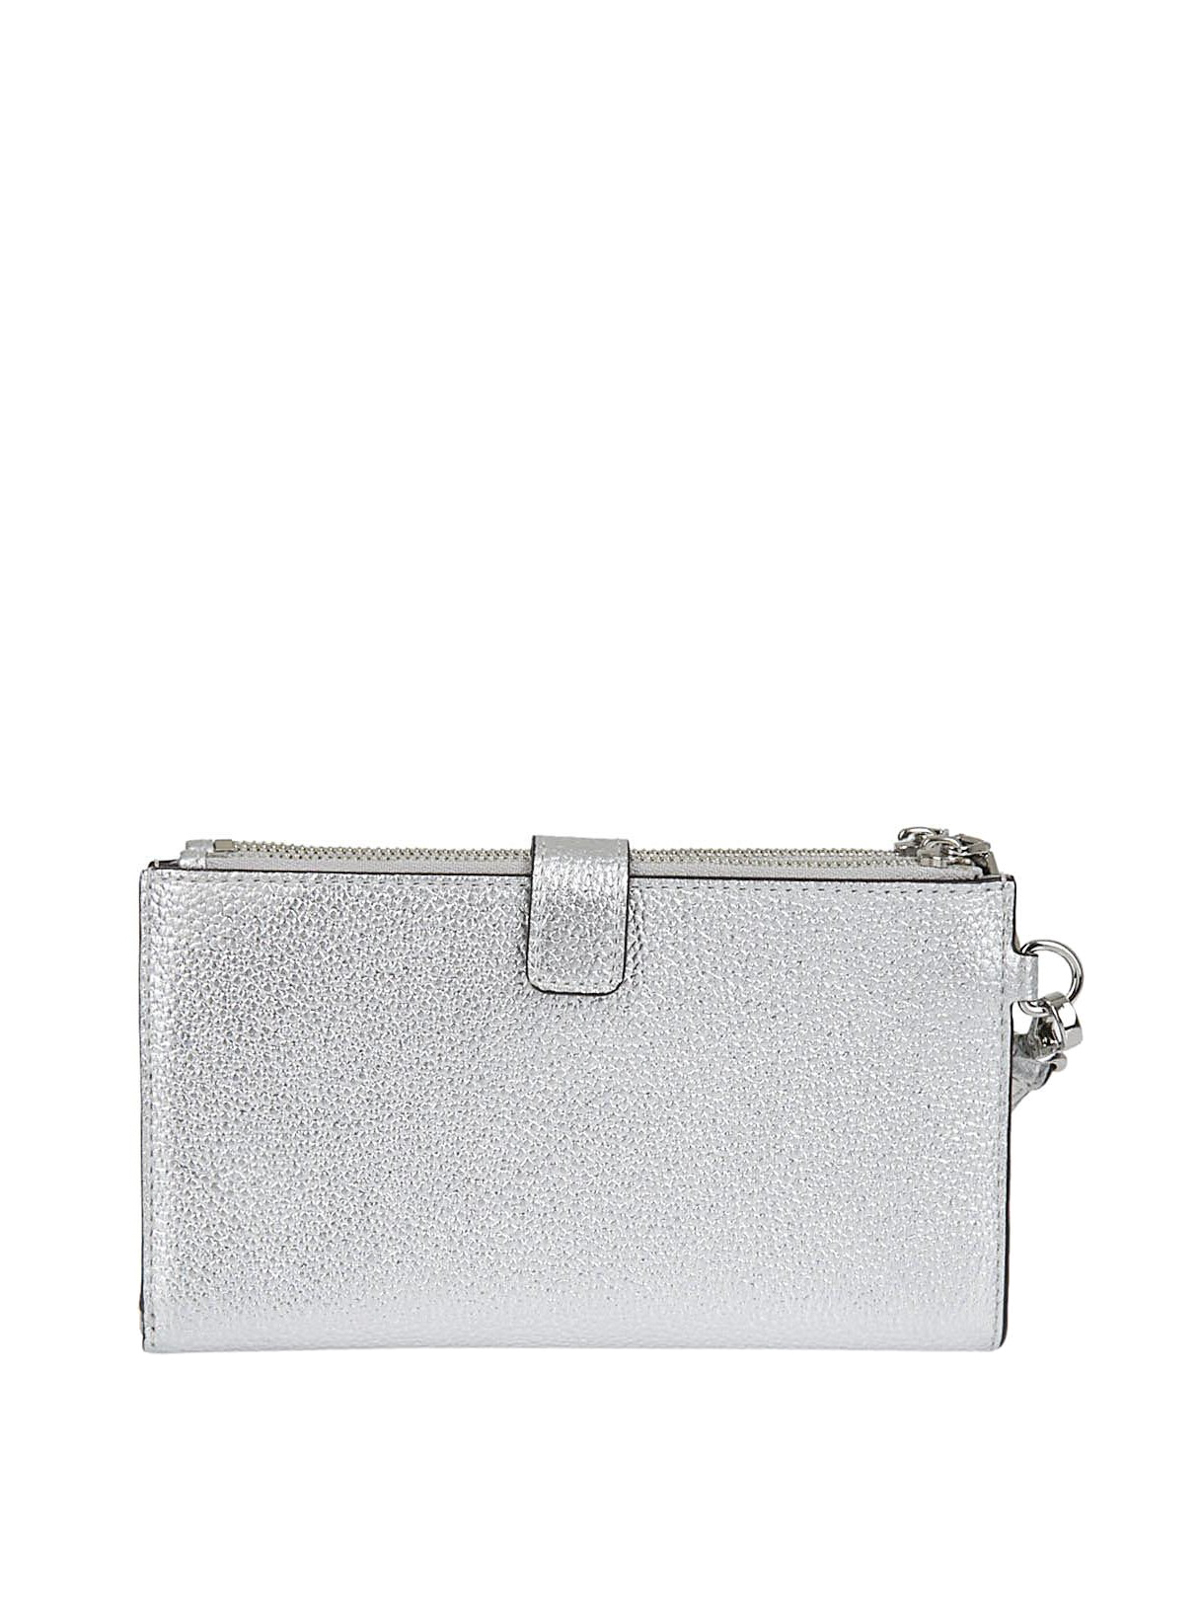 Michael Kors Silver laminated leather wallet wallets